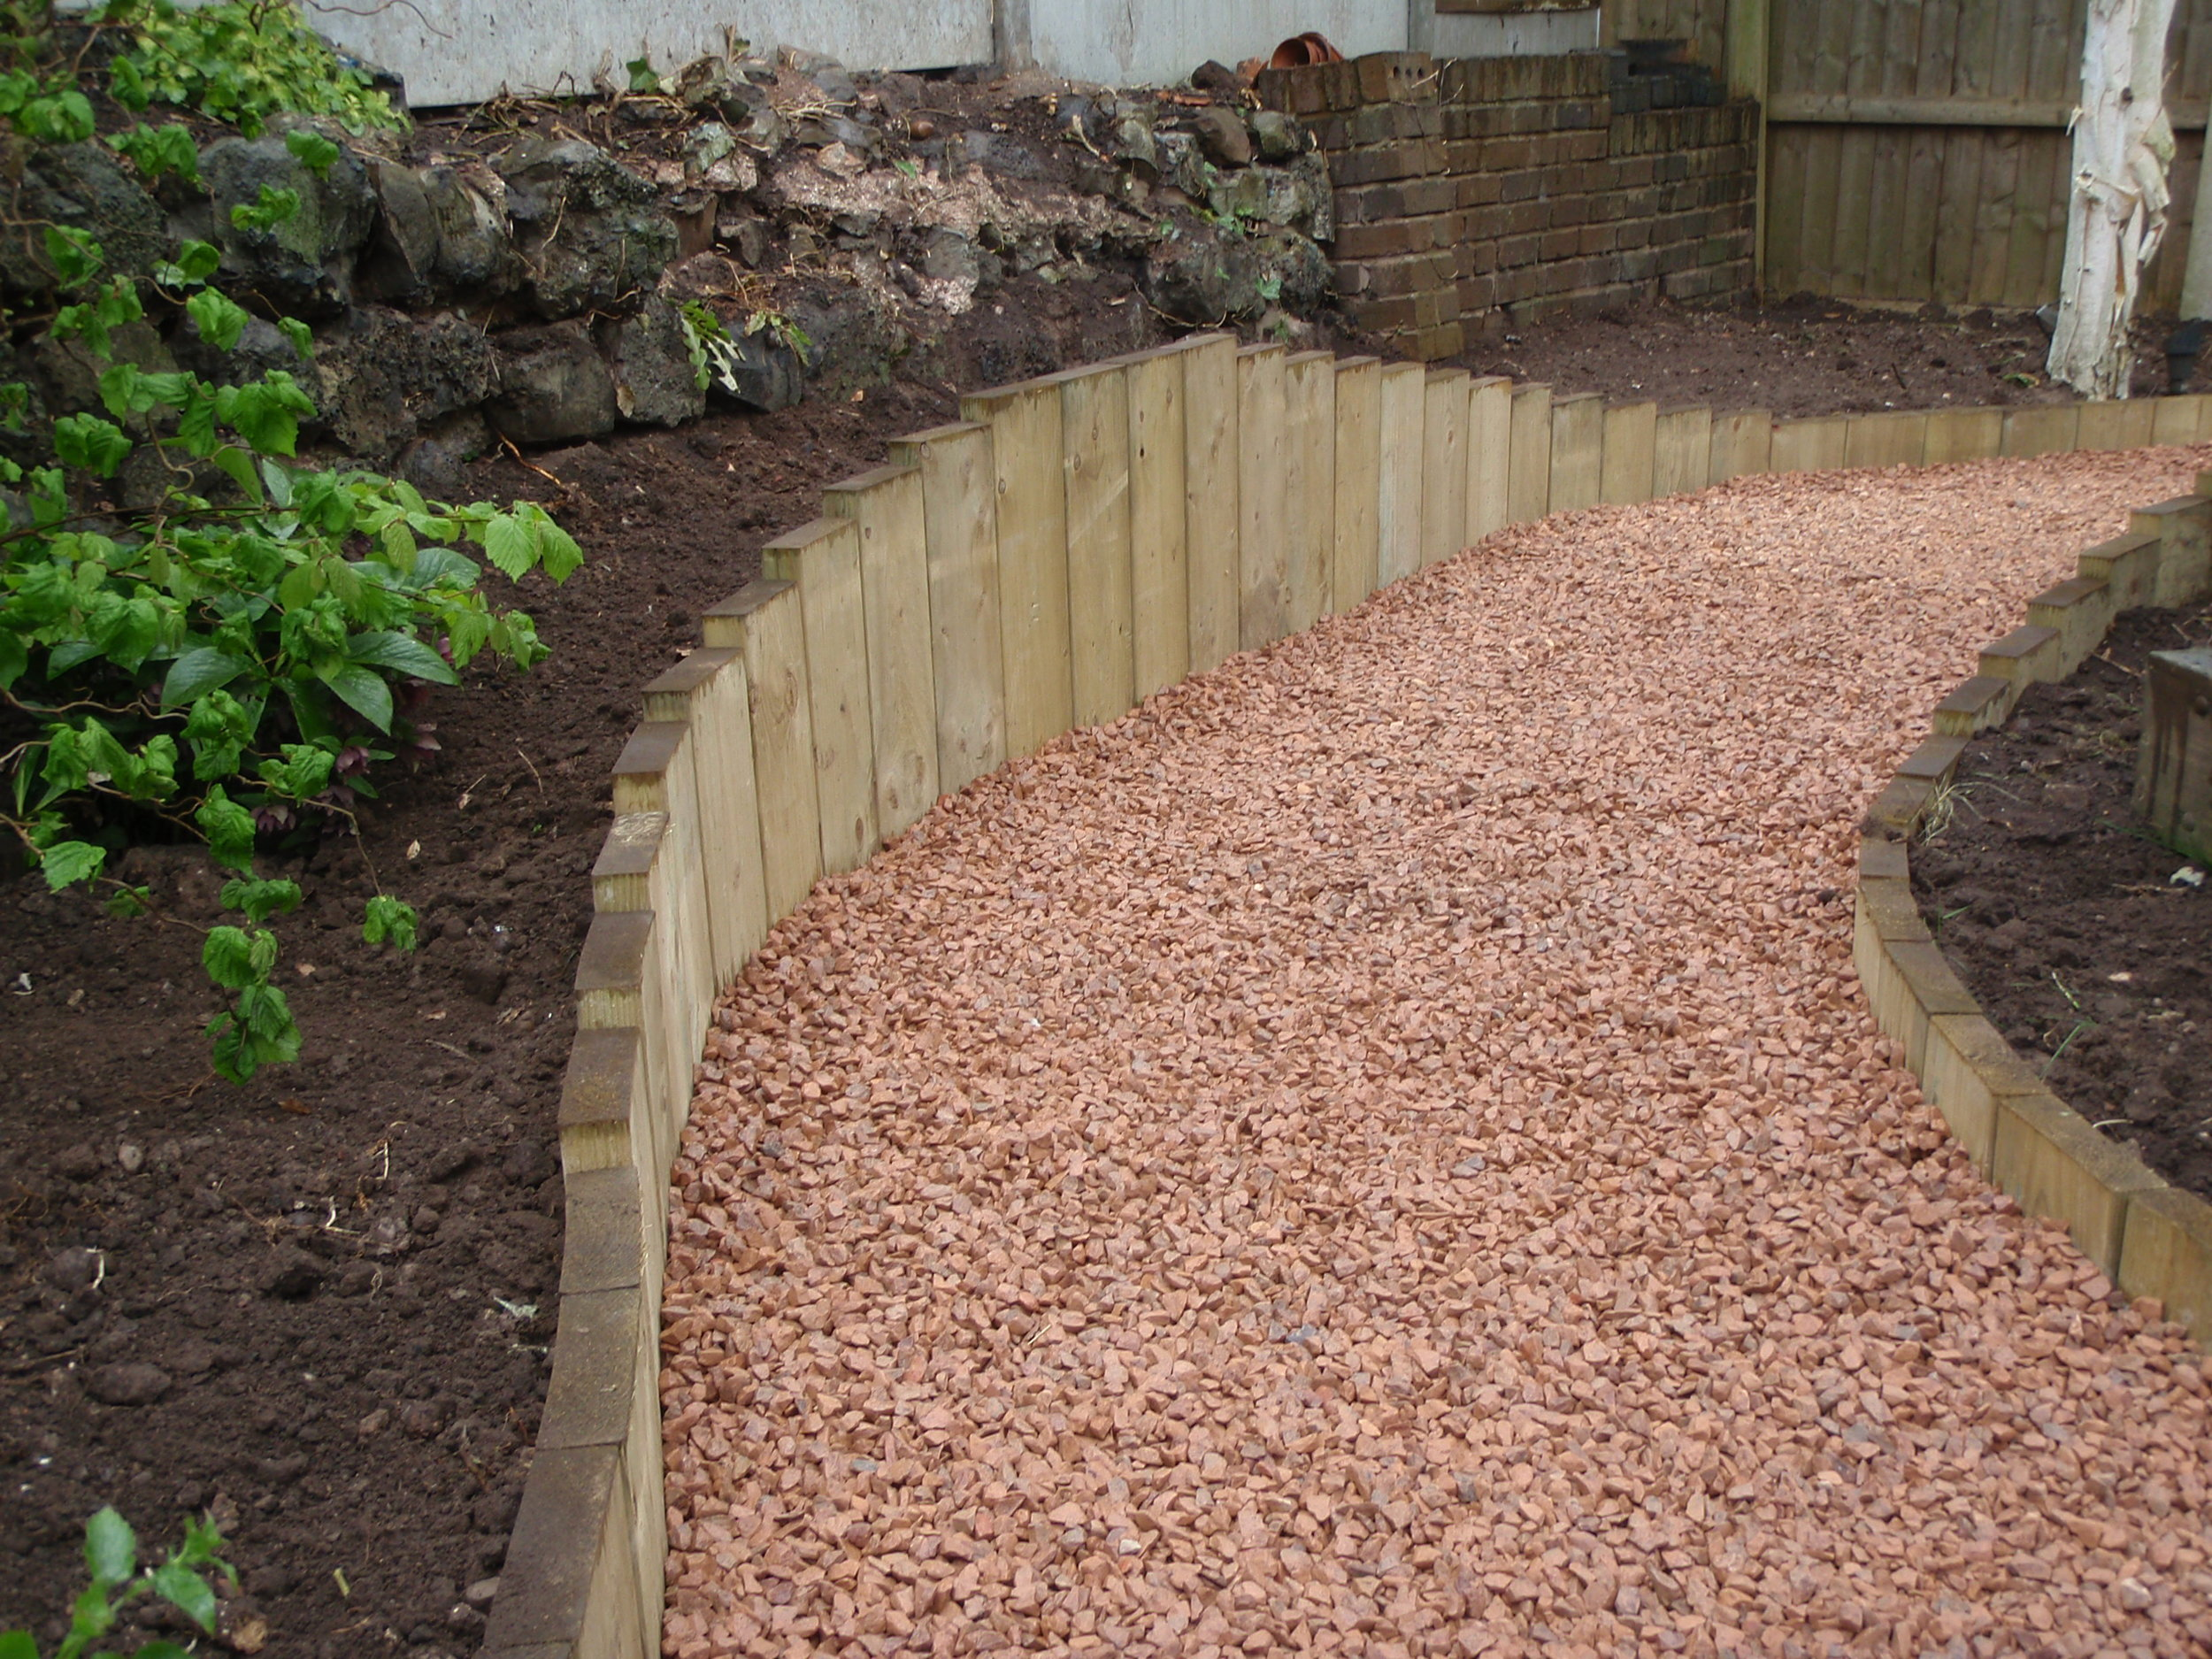 Garden path with Forest of Dean stone chippings edged with upright treated softwood - Parkfield Road, Stourbridge